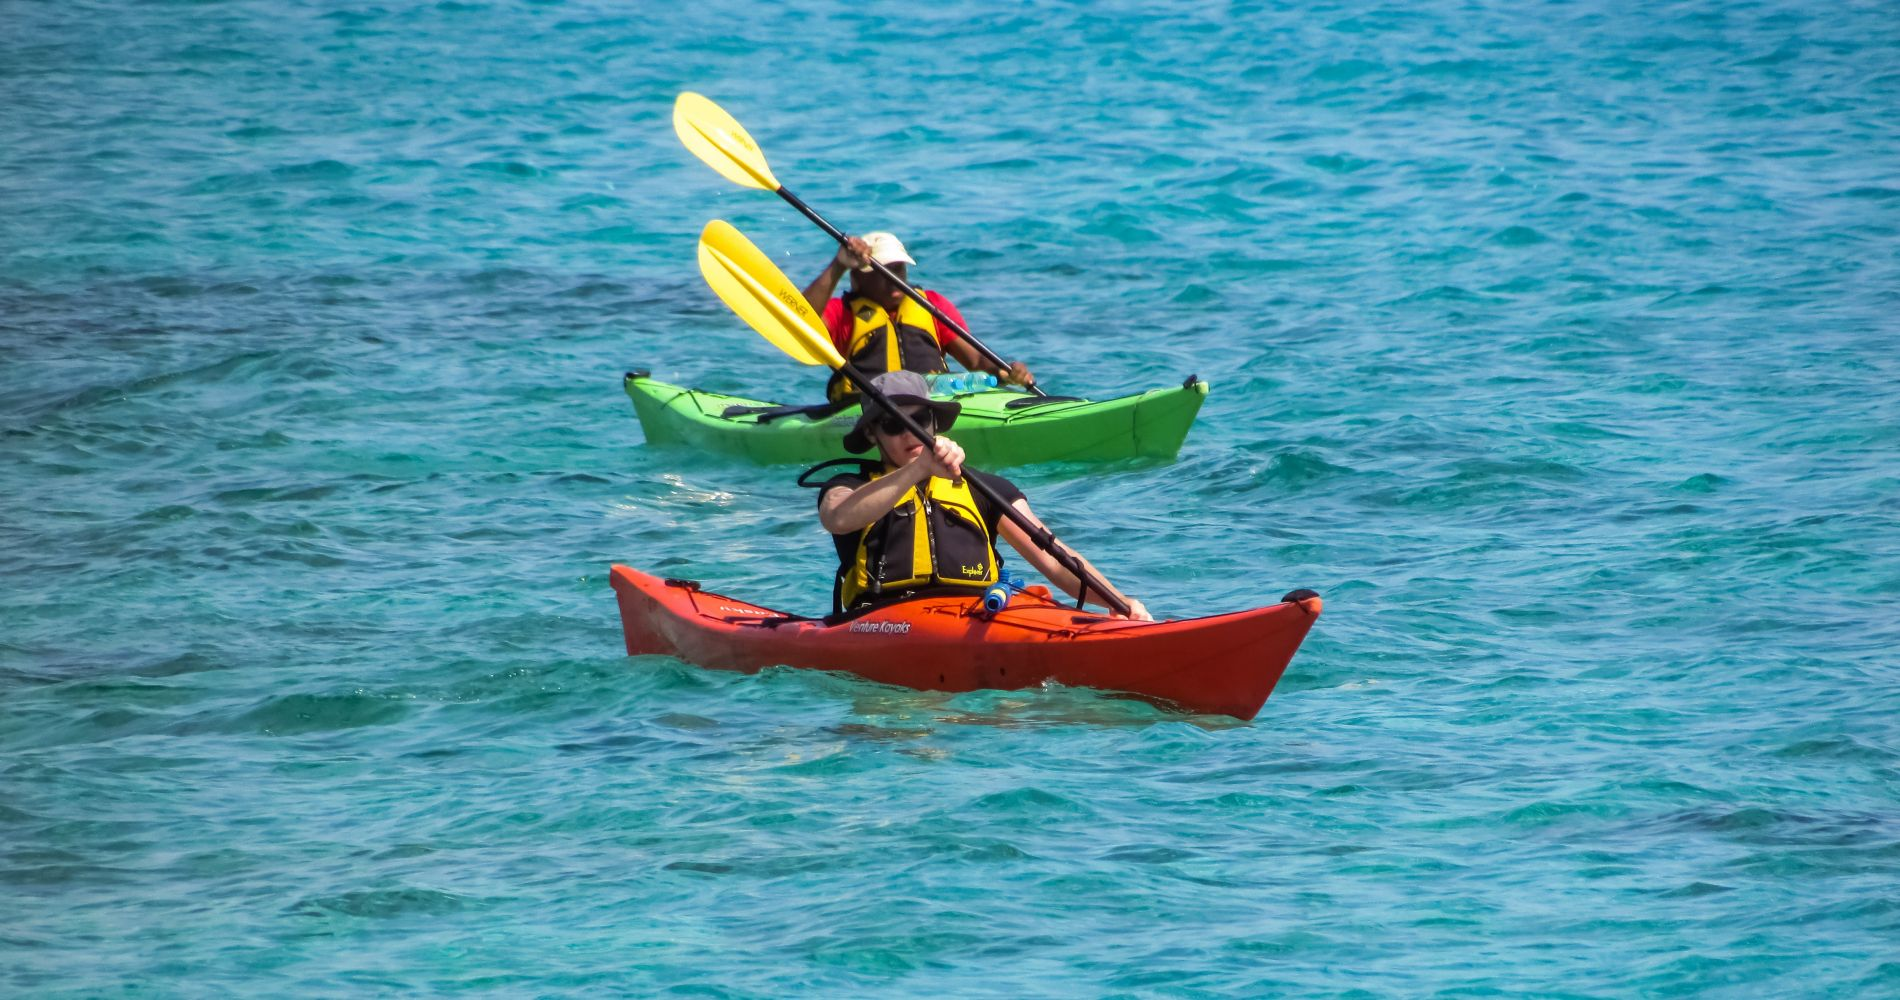 Zadar Full-Day Kayaking Tour in Dugi Otok